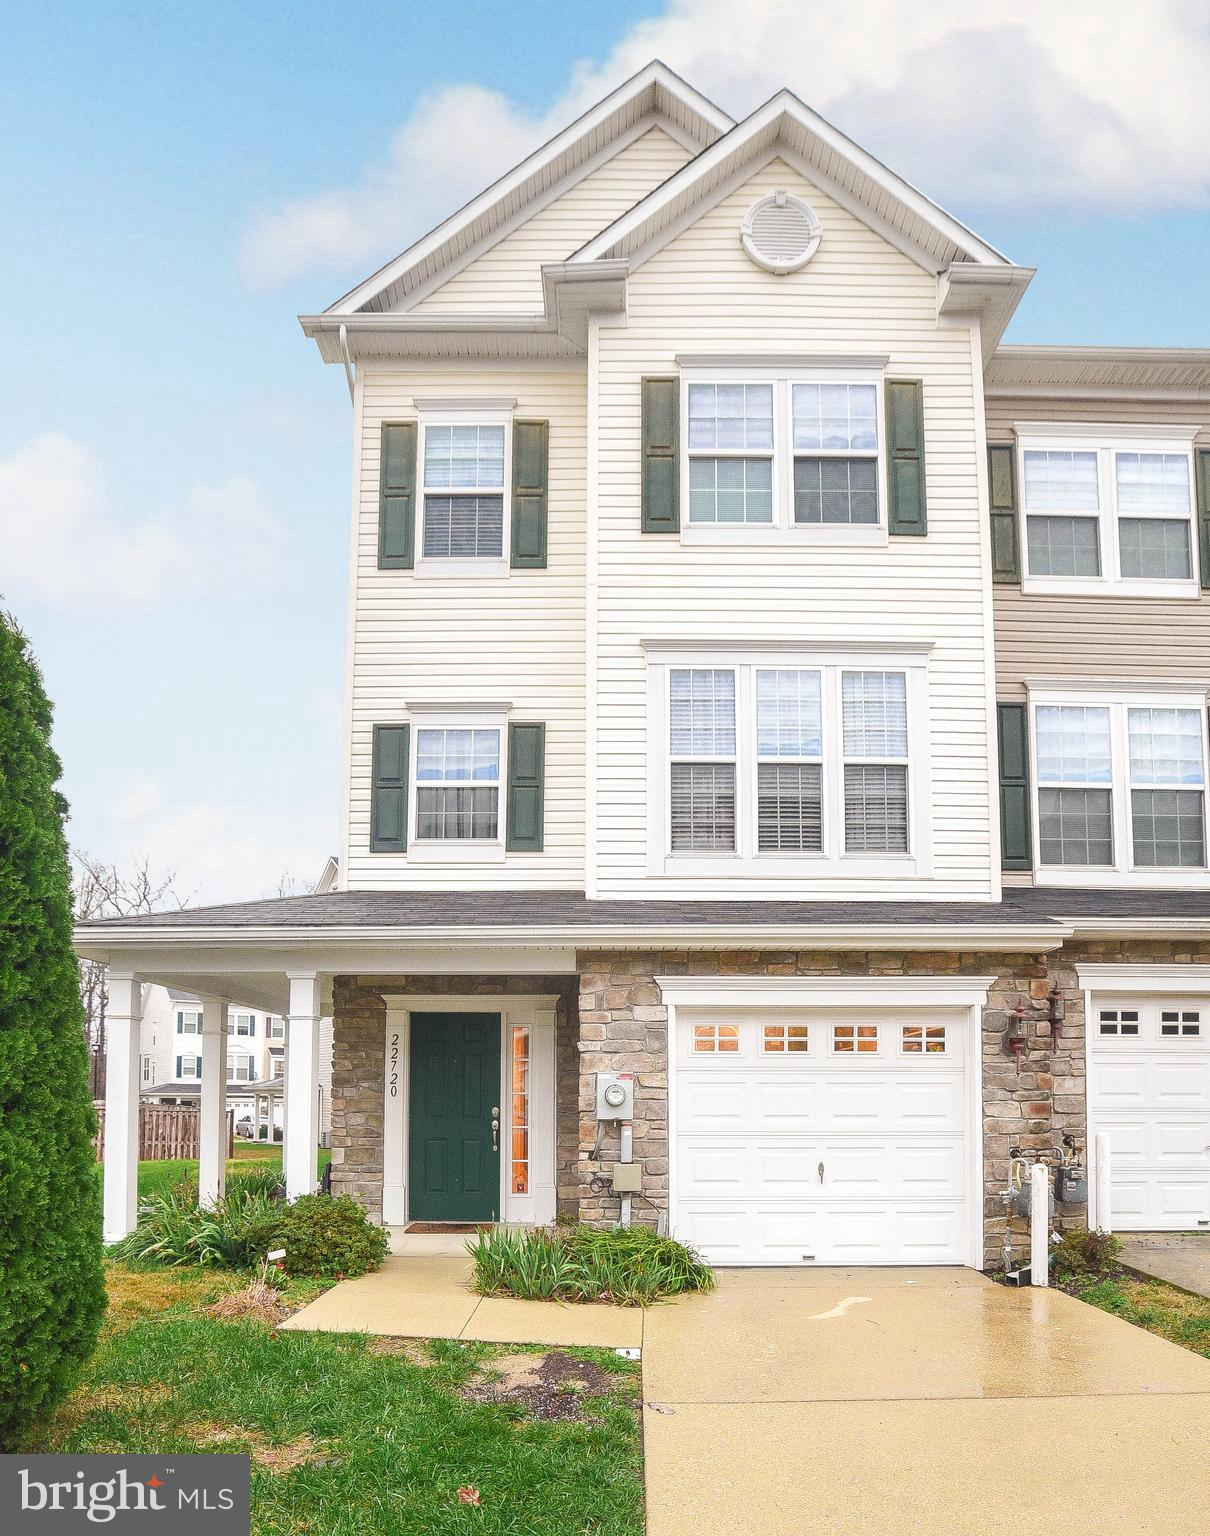 MOVE IN READY!!!! This end unit townhouse has everything you need.  New carpet, fresh paint through